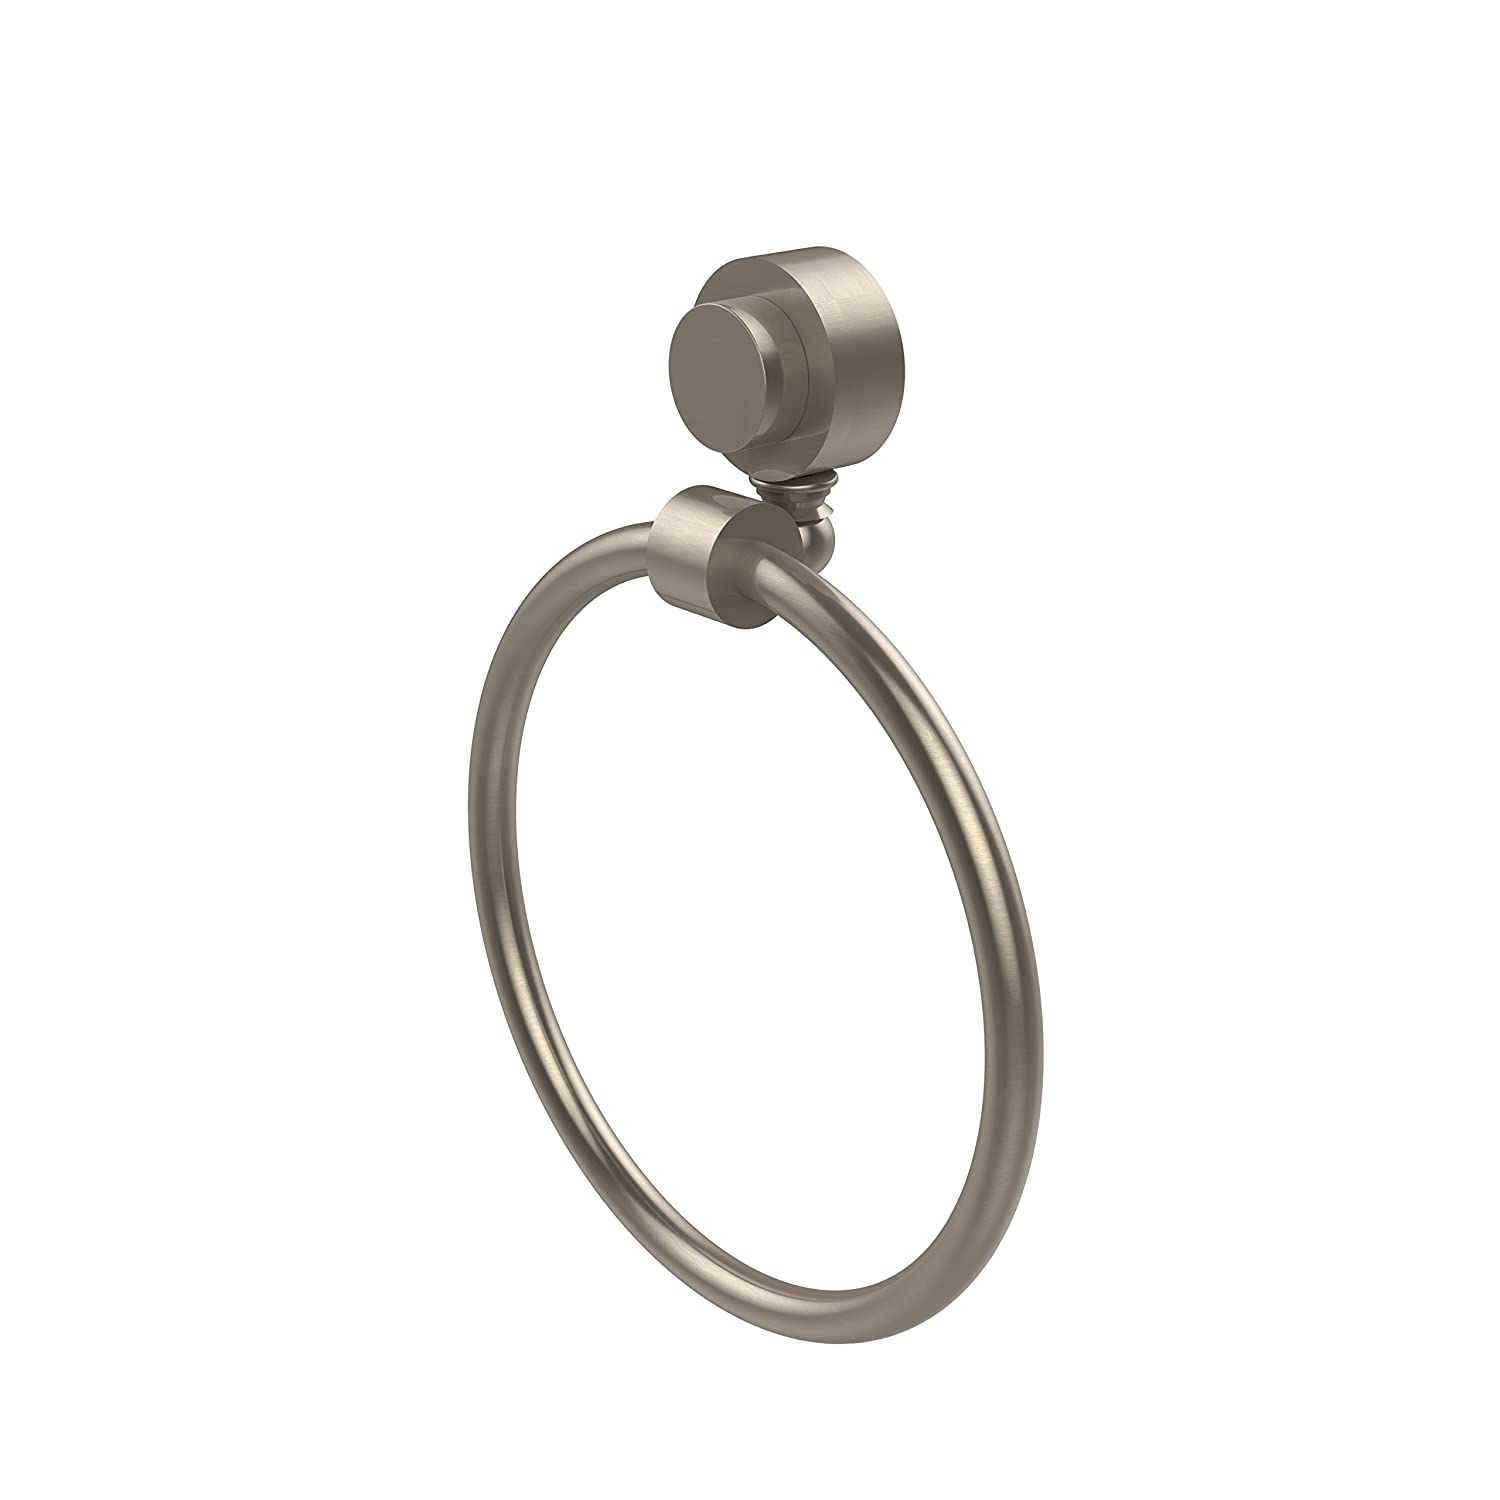 Allied Brass 416-PEW 15cm Towel Ring, Antique Pewter B003XRQTMU ピューター(Antique Pewter) ピューター(Antique Pewter)